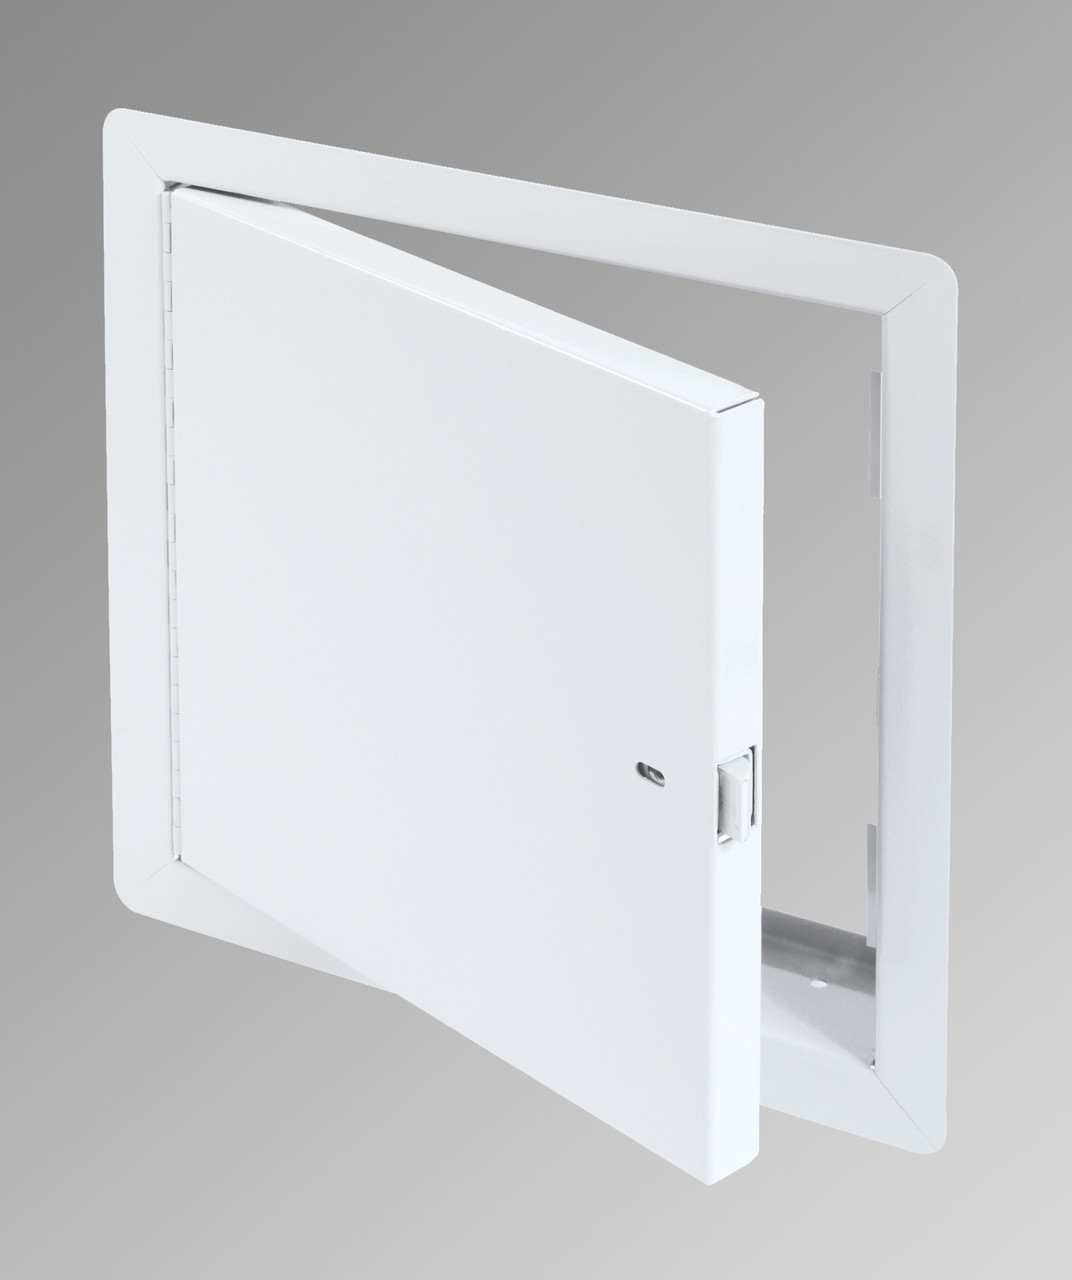 24 Quot X 24 Quot Fire Rated Un Insulated Access Door With